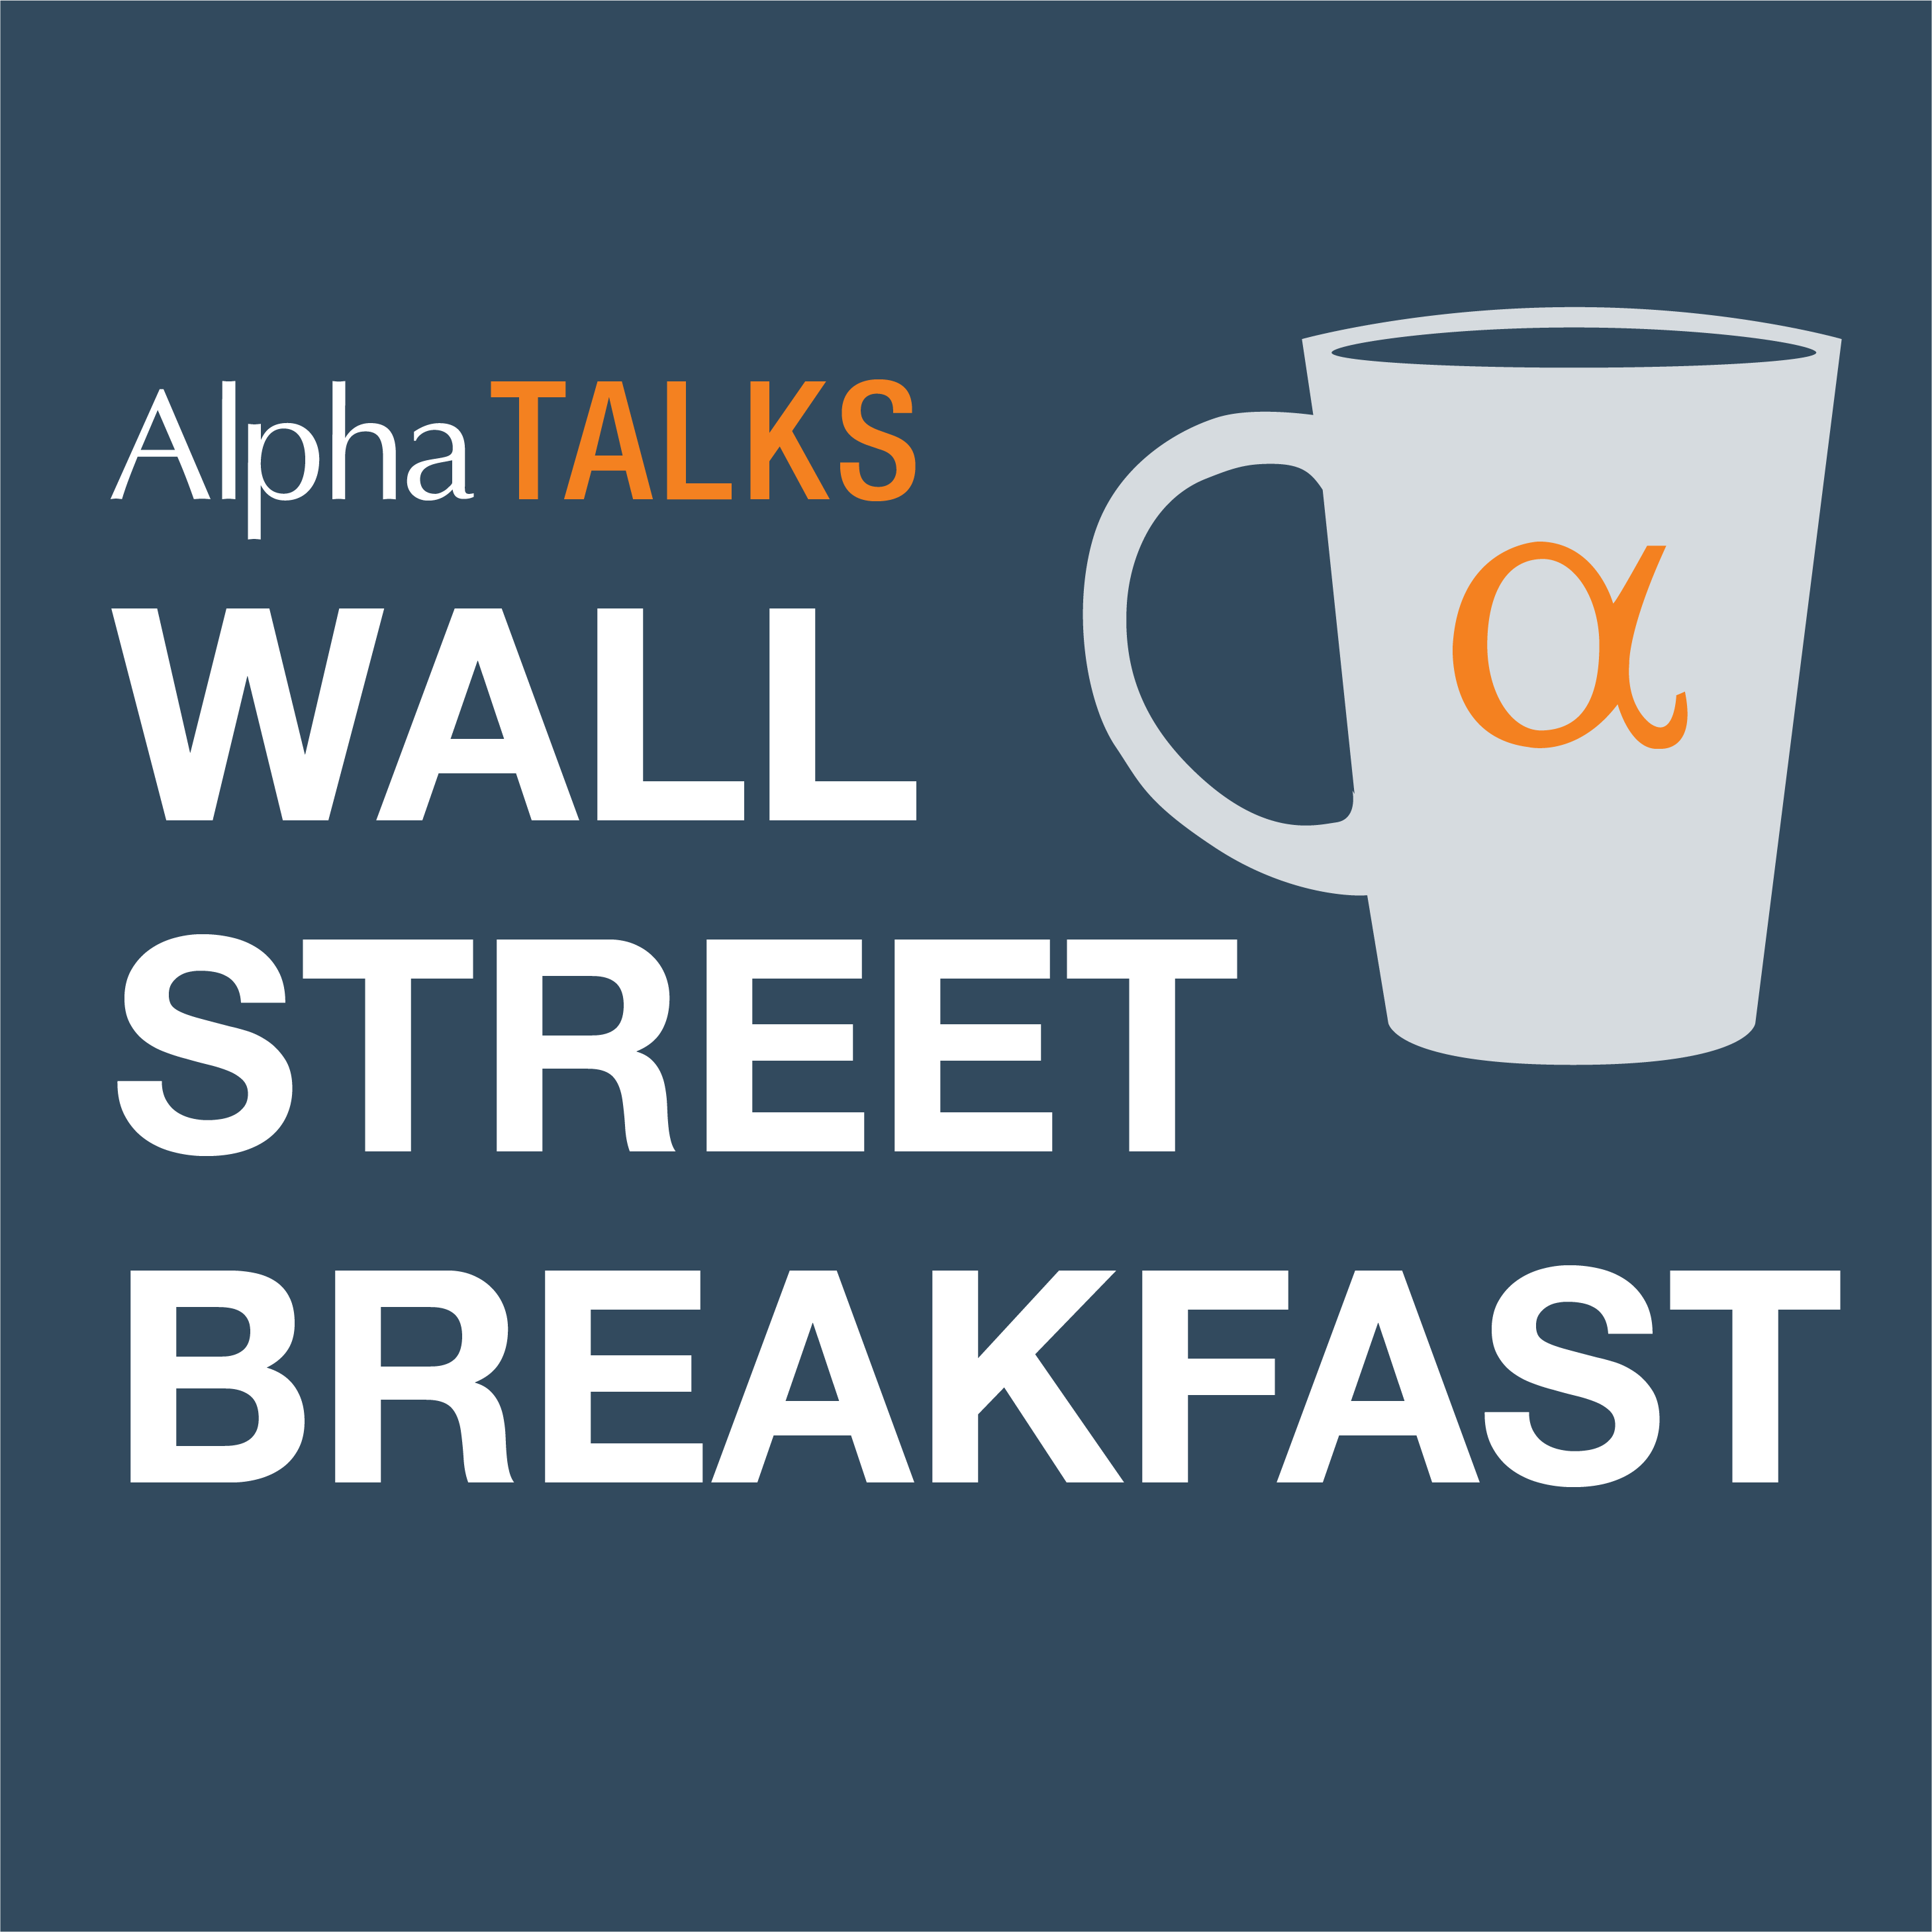 AlphaTALKS Wall Street Breakfast, April 24: What Moved Markets This Week